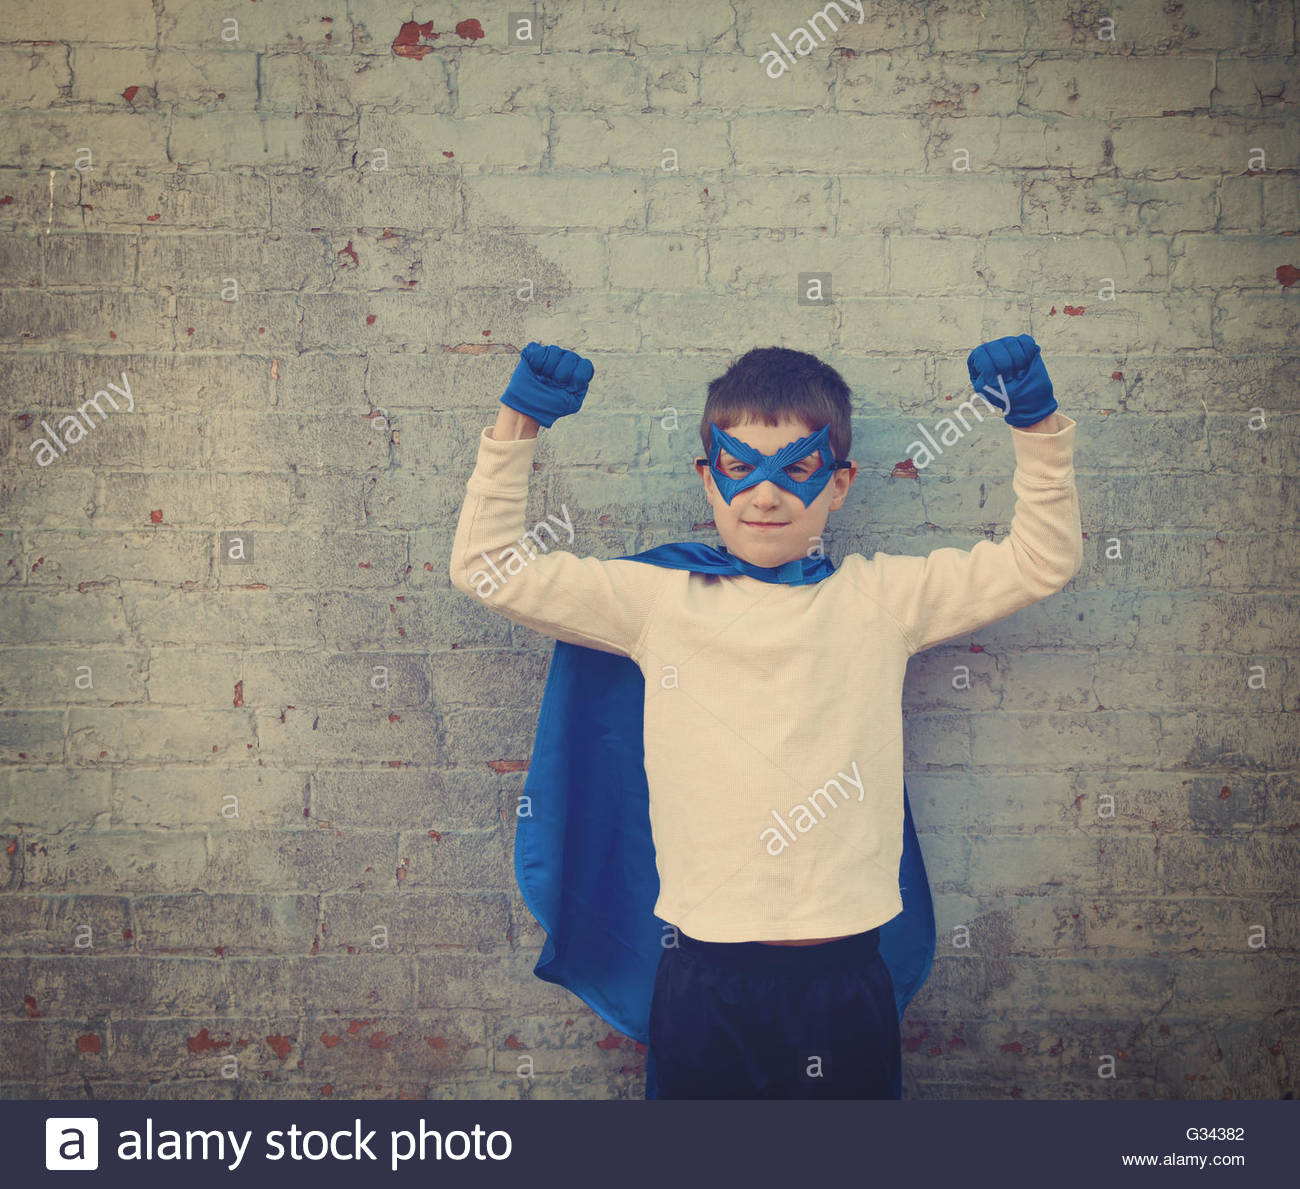 A photo of a vintage child dressed up as a super hero with his strong arms up for a confidence, bravery or imagination - Stock Image